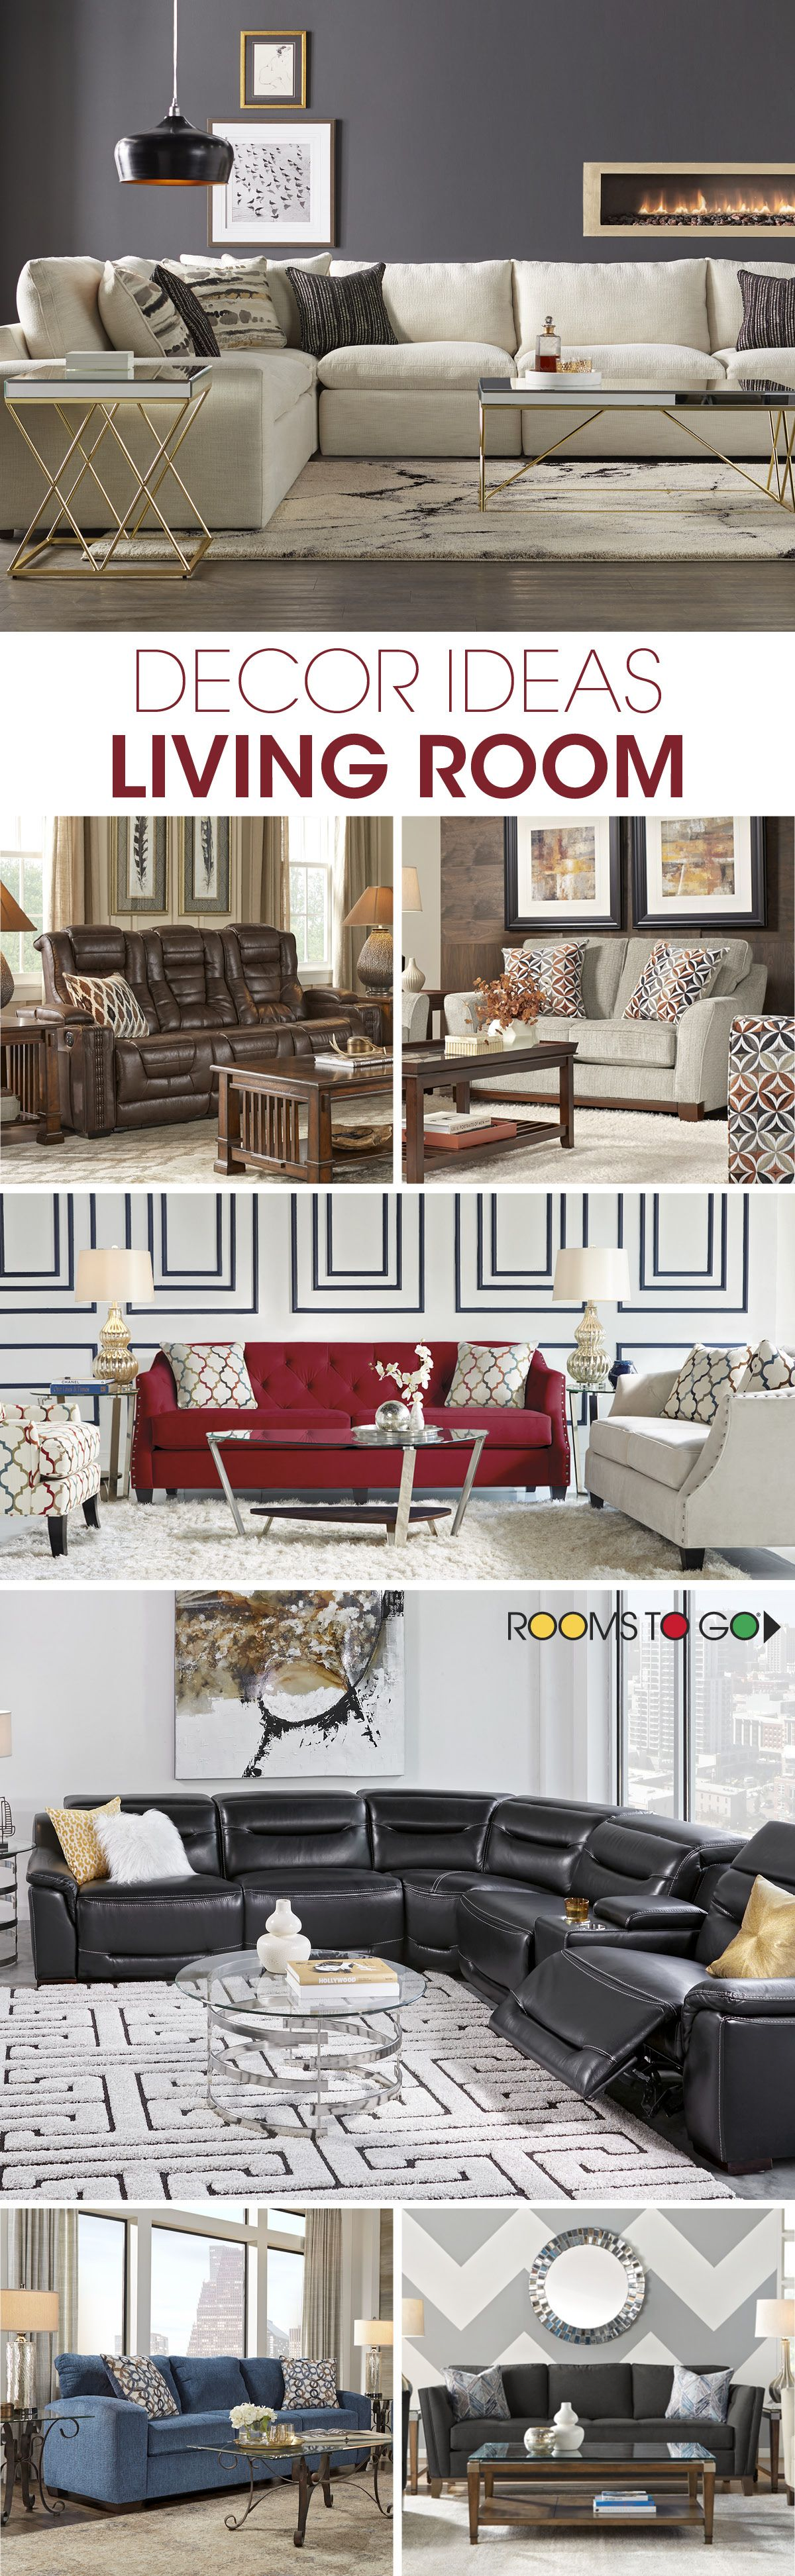 Looking For Decor Ideas Your Living Room Add Accent Pieces Wall Art Rugs Lighting And Pillows To Make Home Look More Stylish Visit Rooms Go